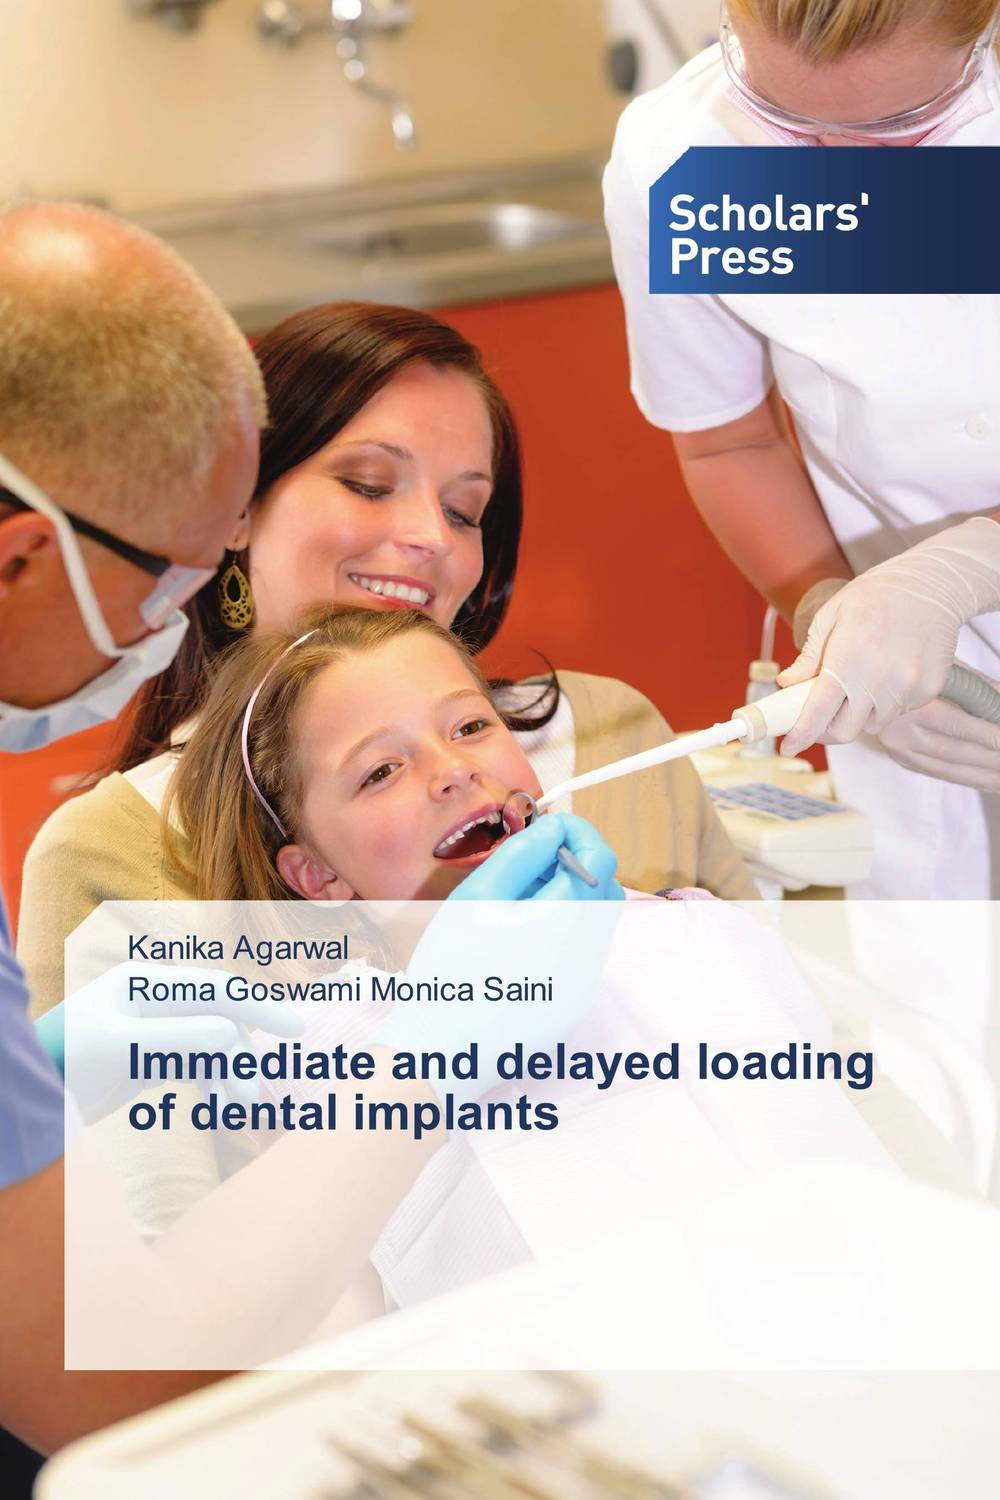 Immediate and delayed loading of dental implants shaveta kaushal and atamjit singh pal dental implants and its design